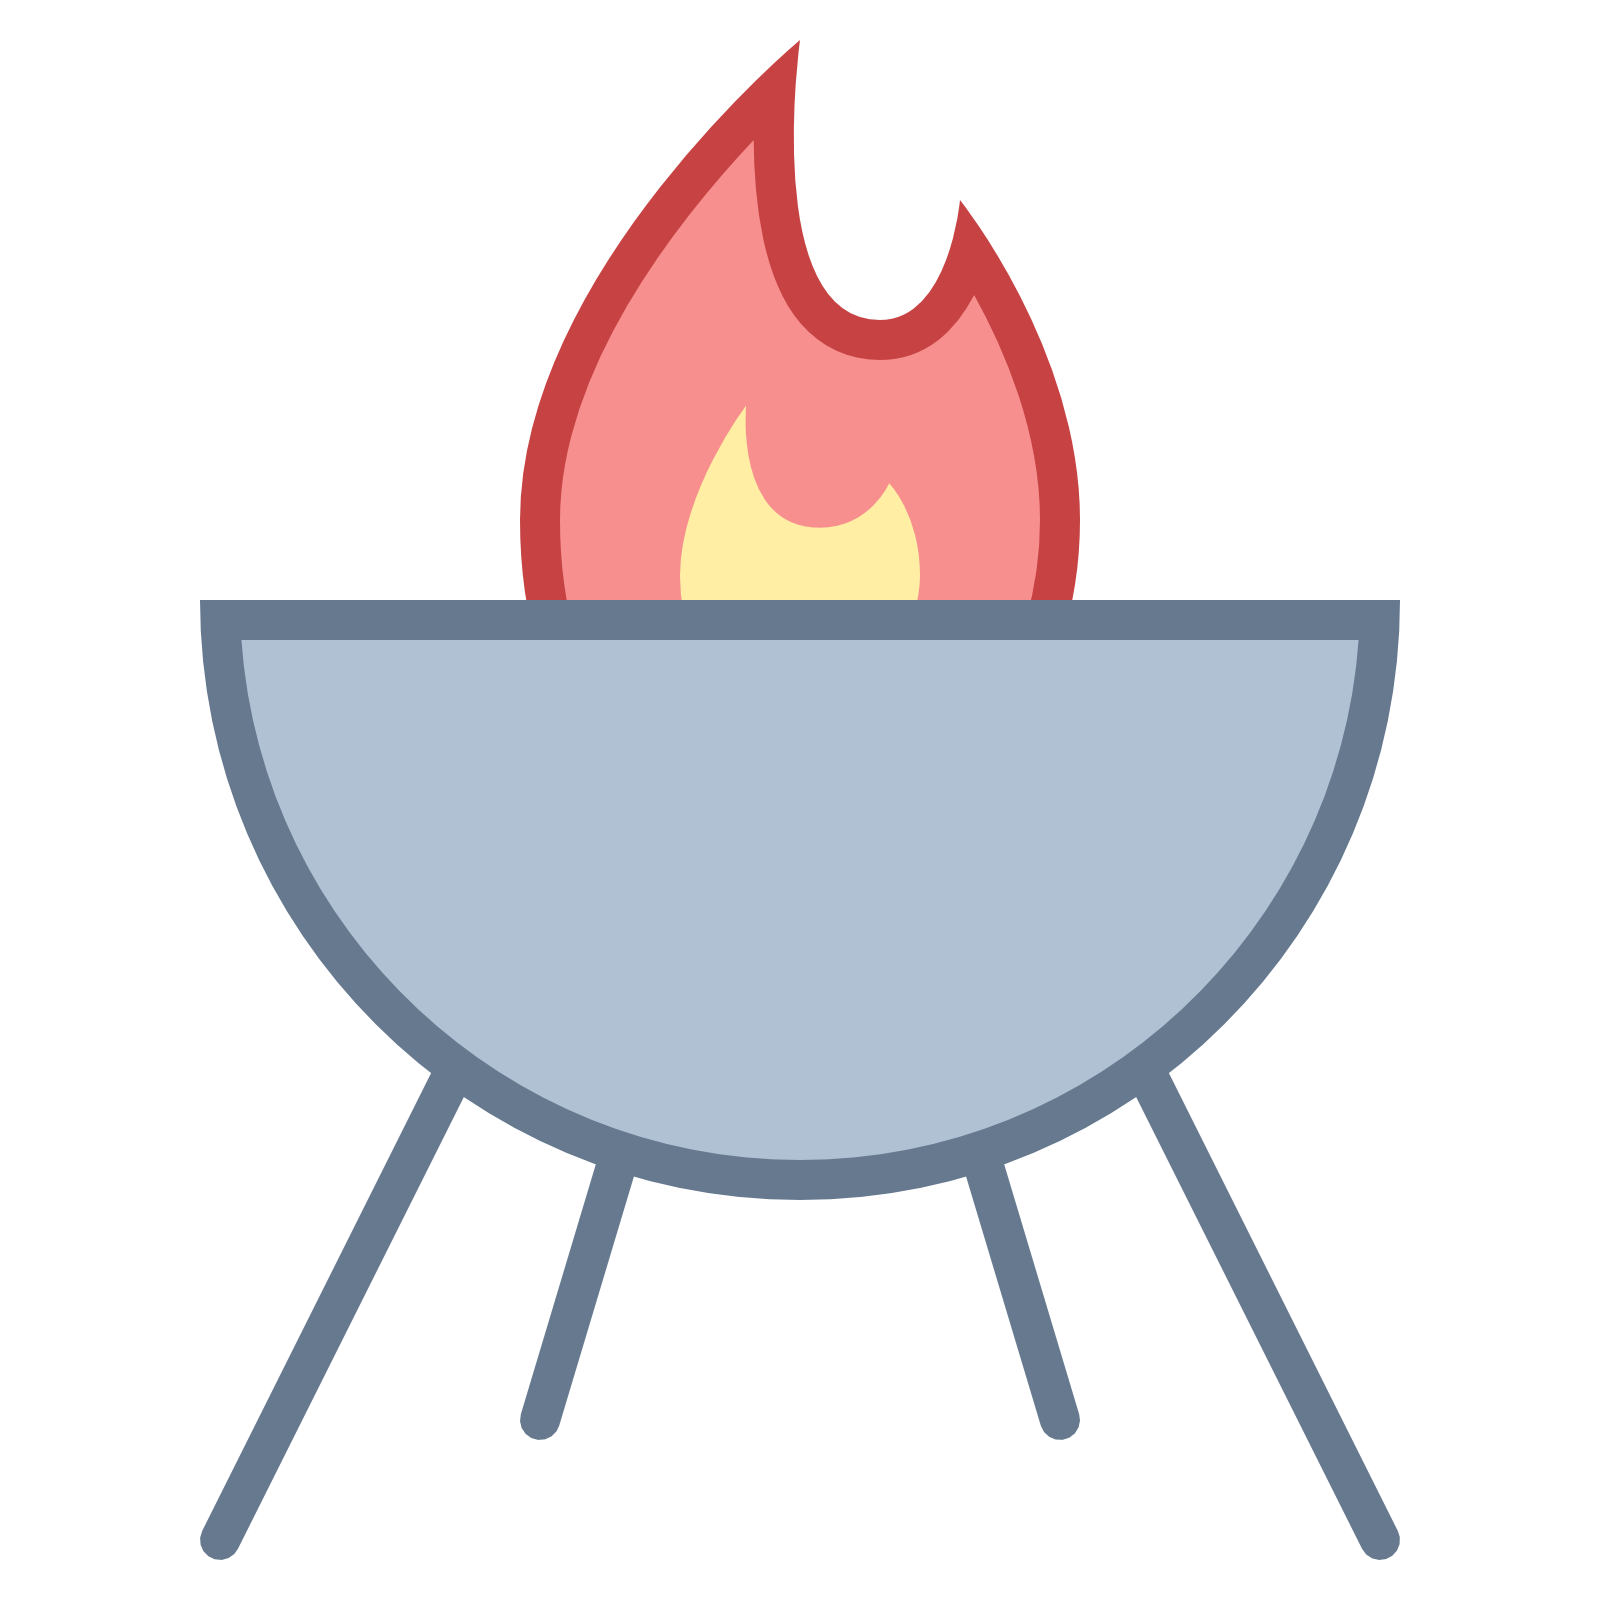 Free PNG Grill - 47971